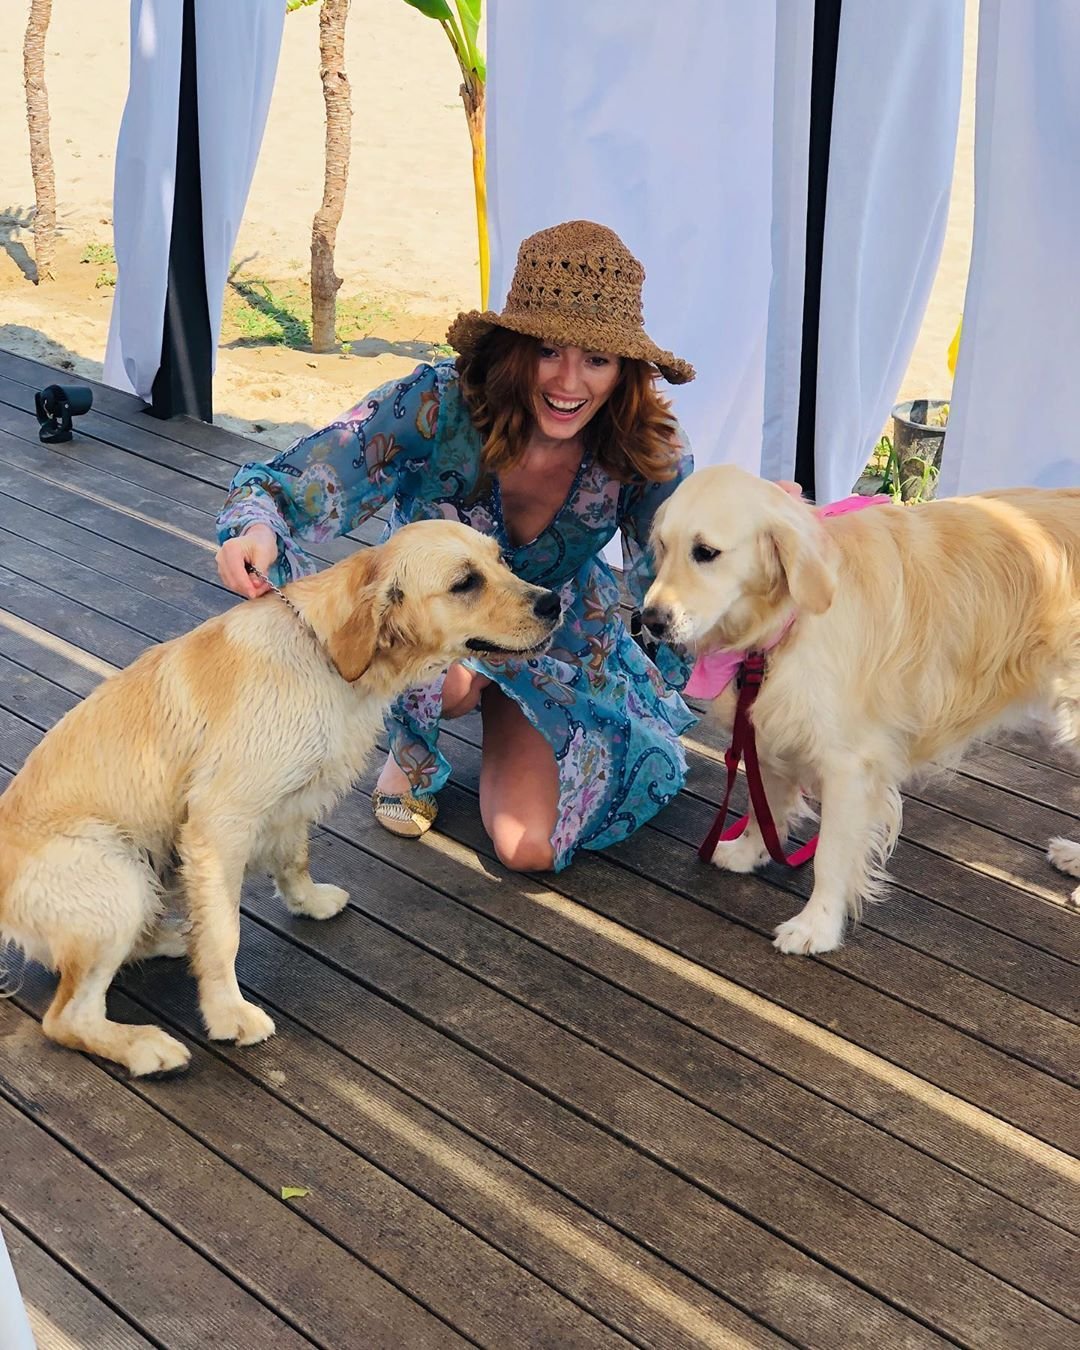 At Ilda S Lifestyle Blogger On Instagram Golden Retrievers